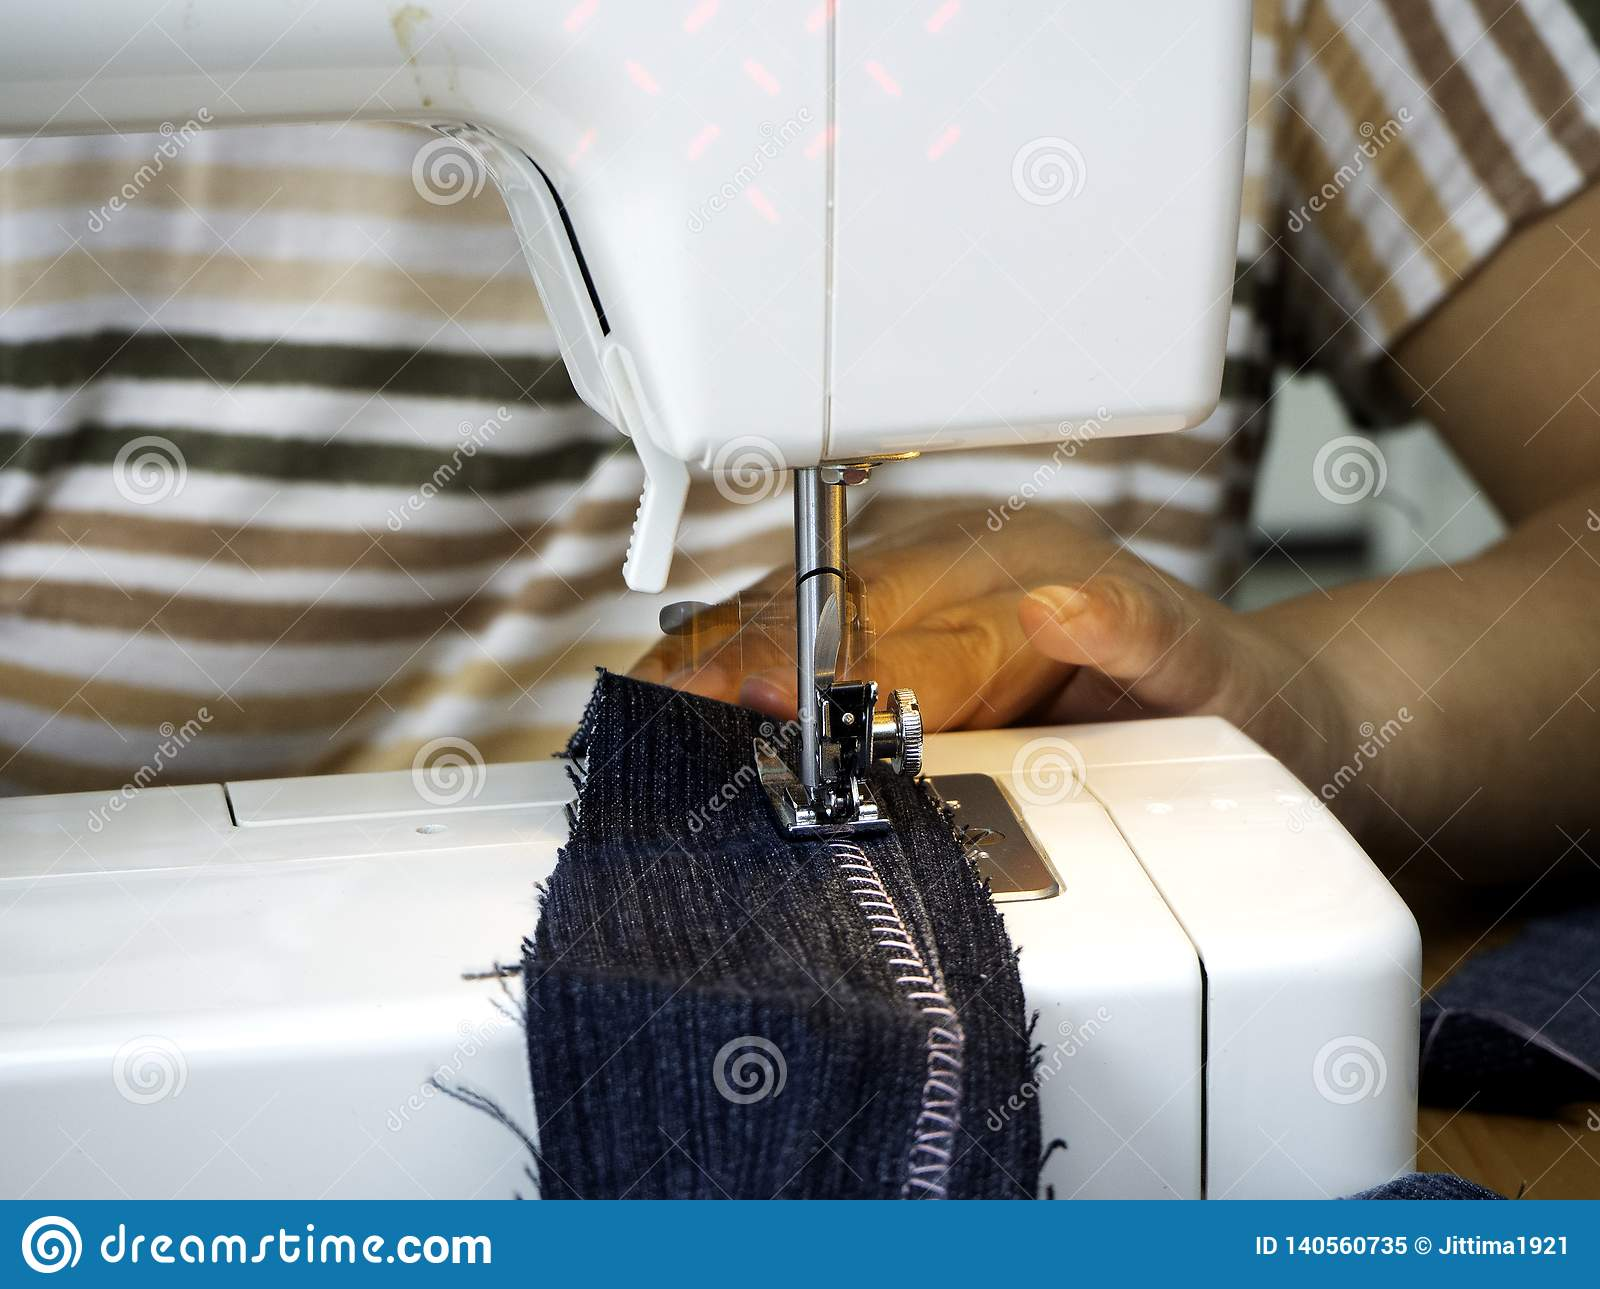 Hands working on the sewing machine